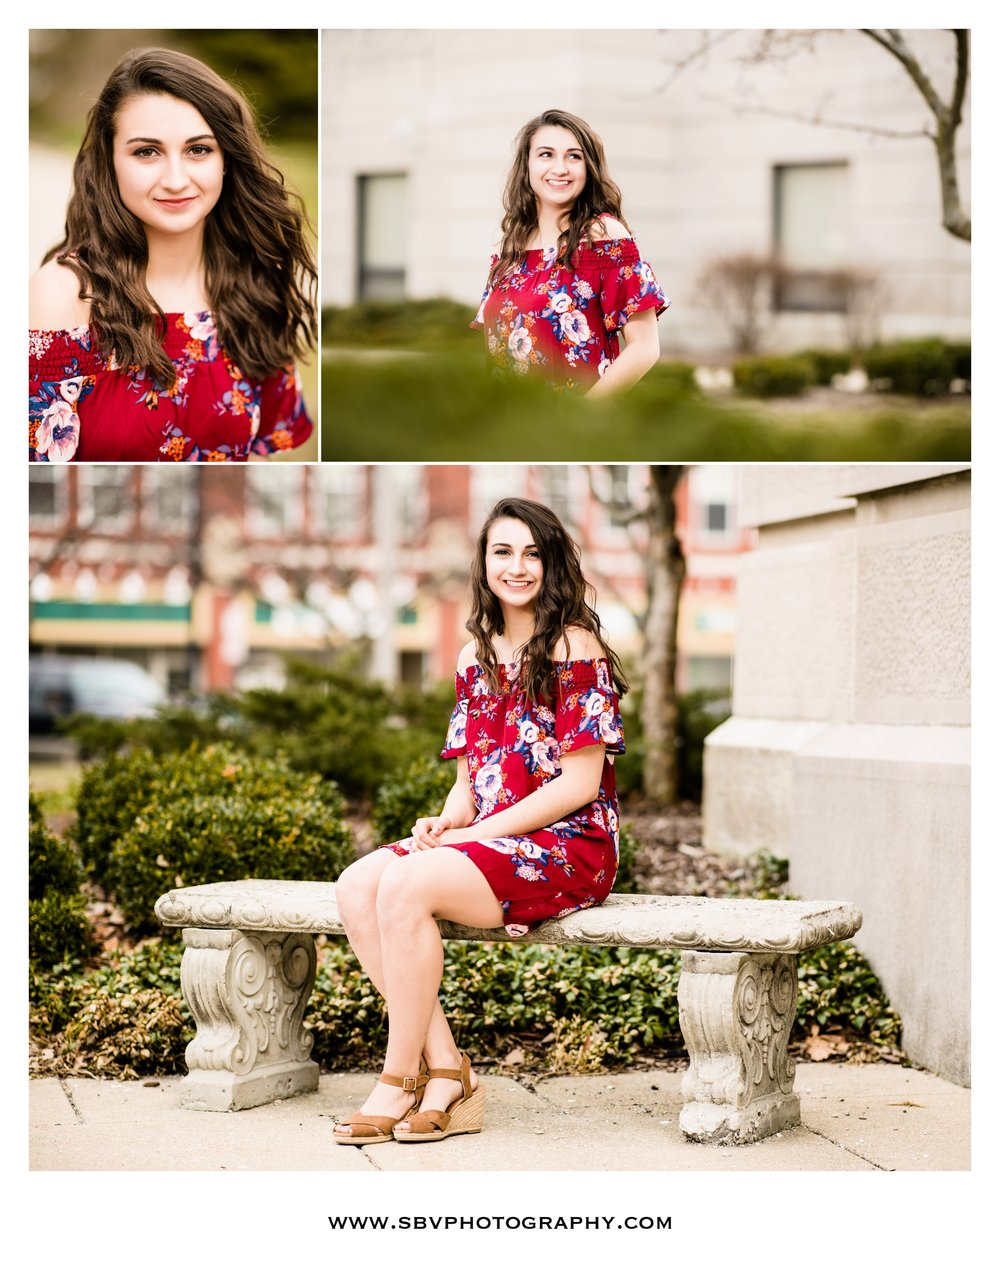 Senior portraits in front of the courthouse in downtown Valparaiso.